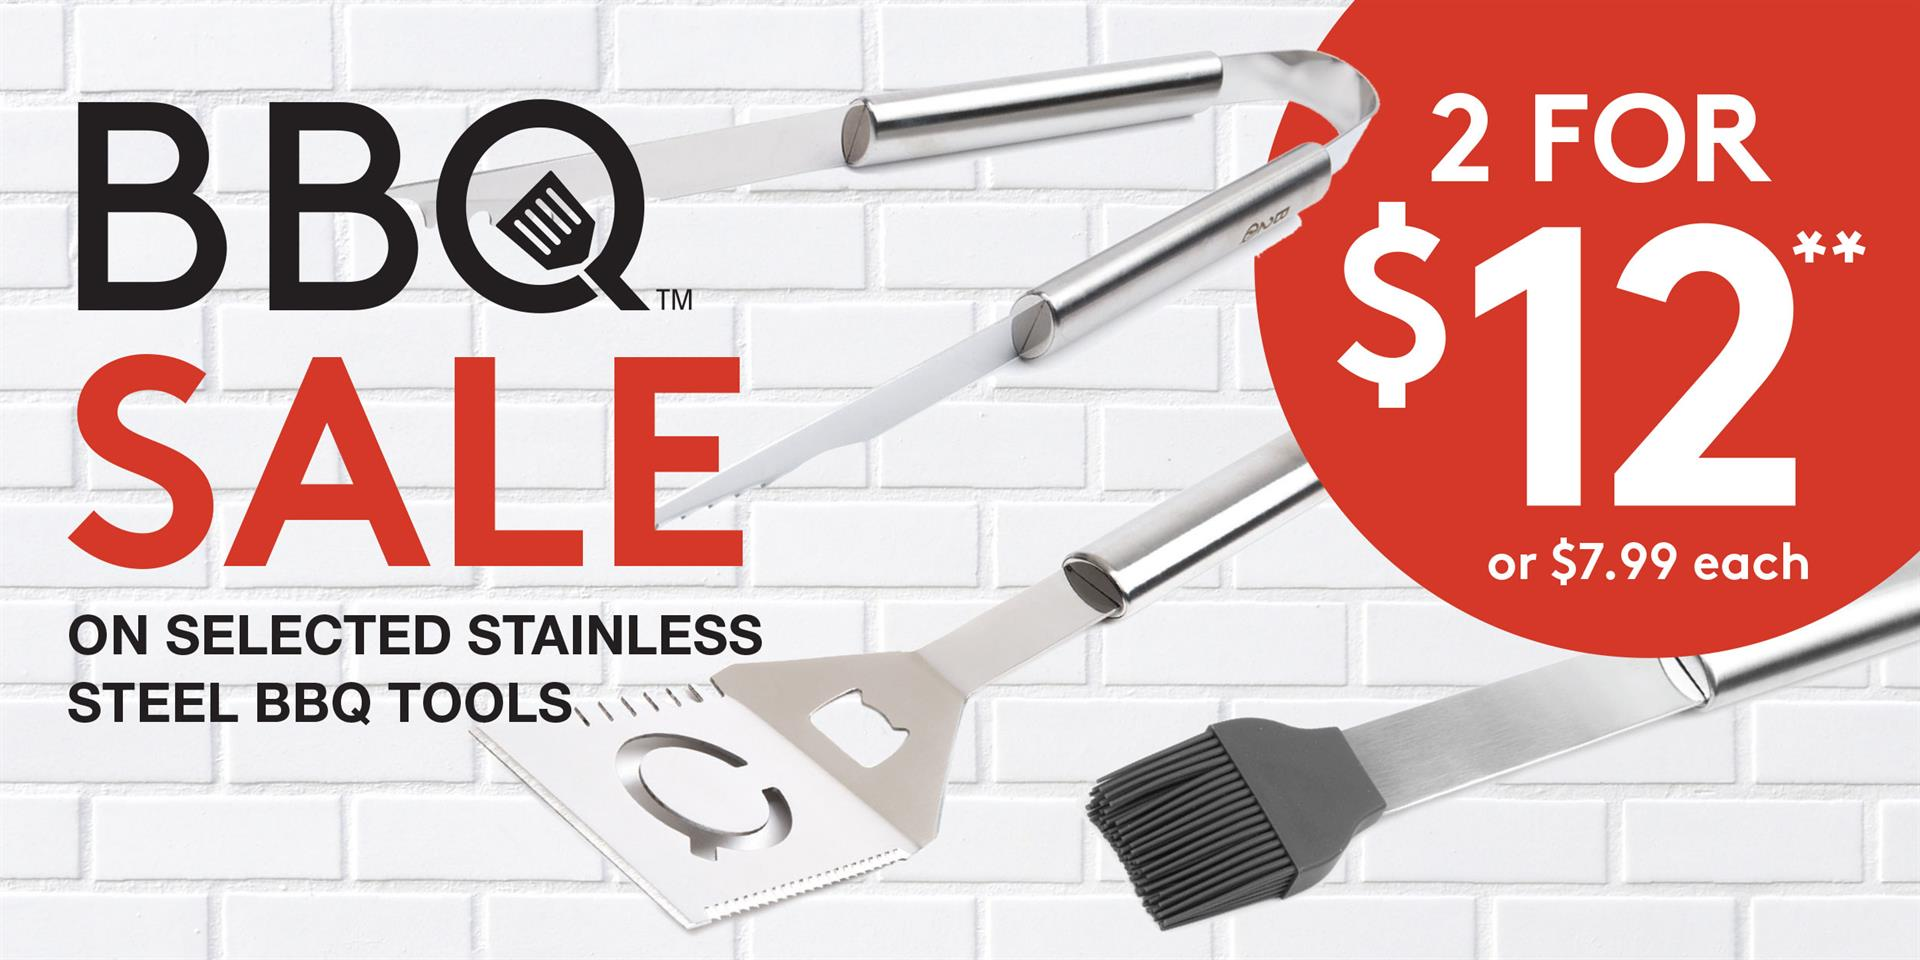 BBQ Sale on selected stainless steel BBQ tools. 2 for $12